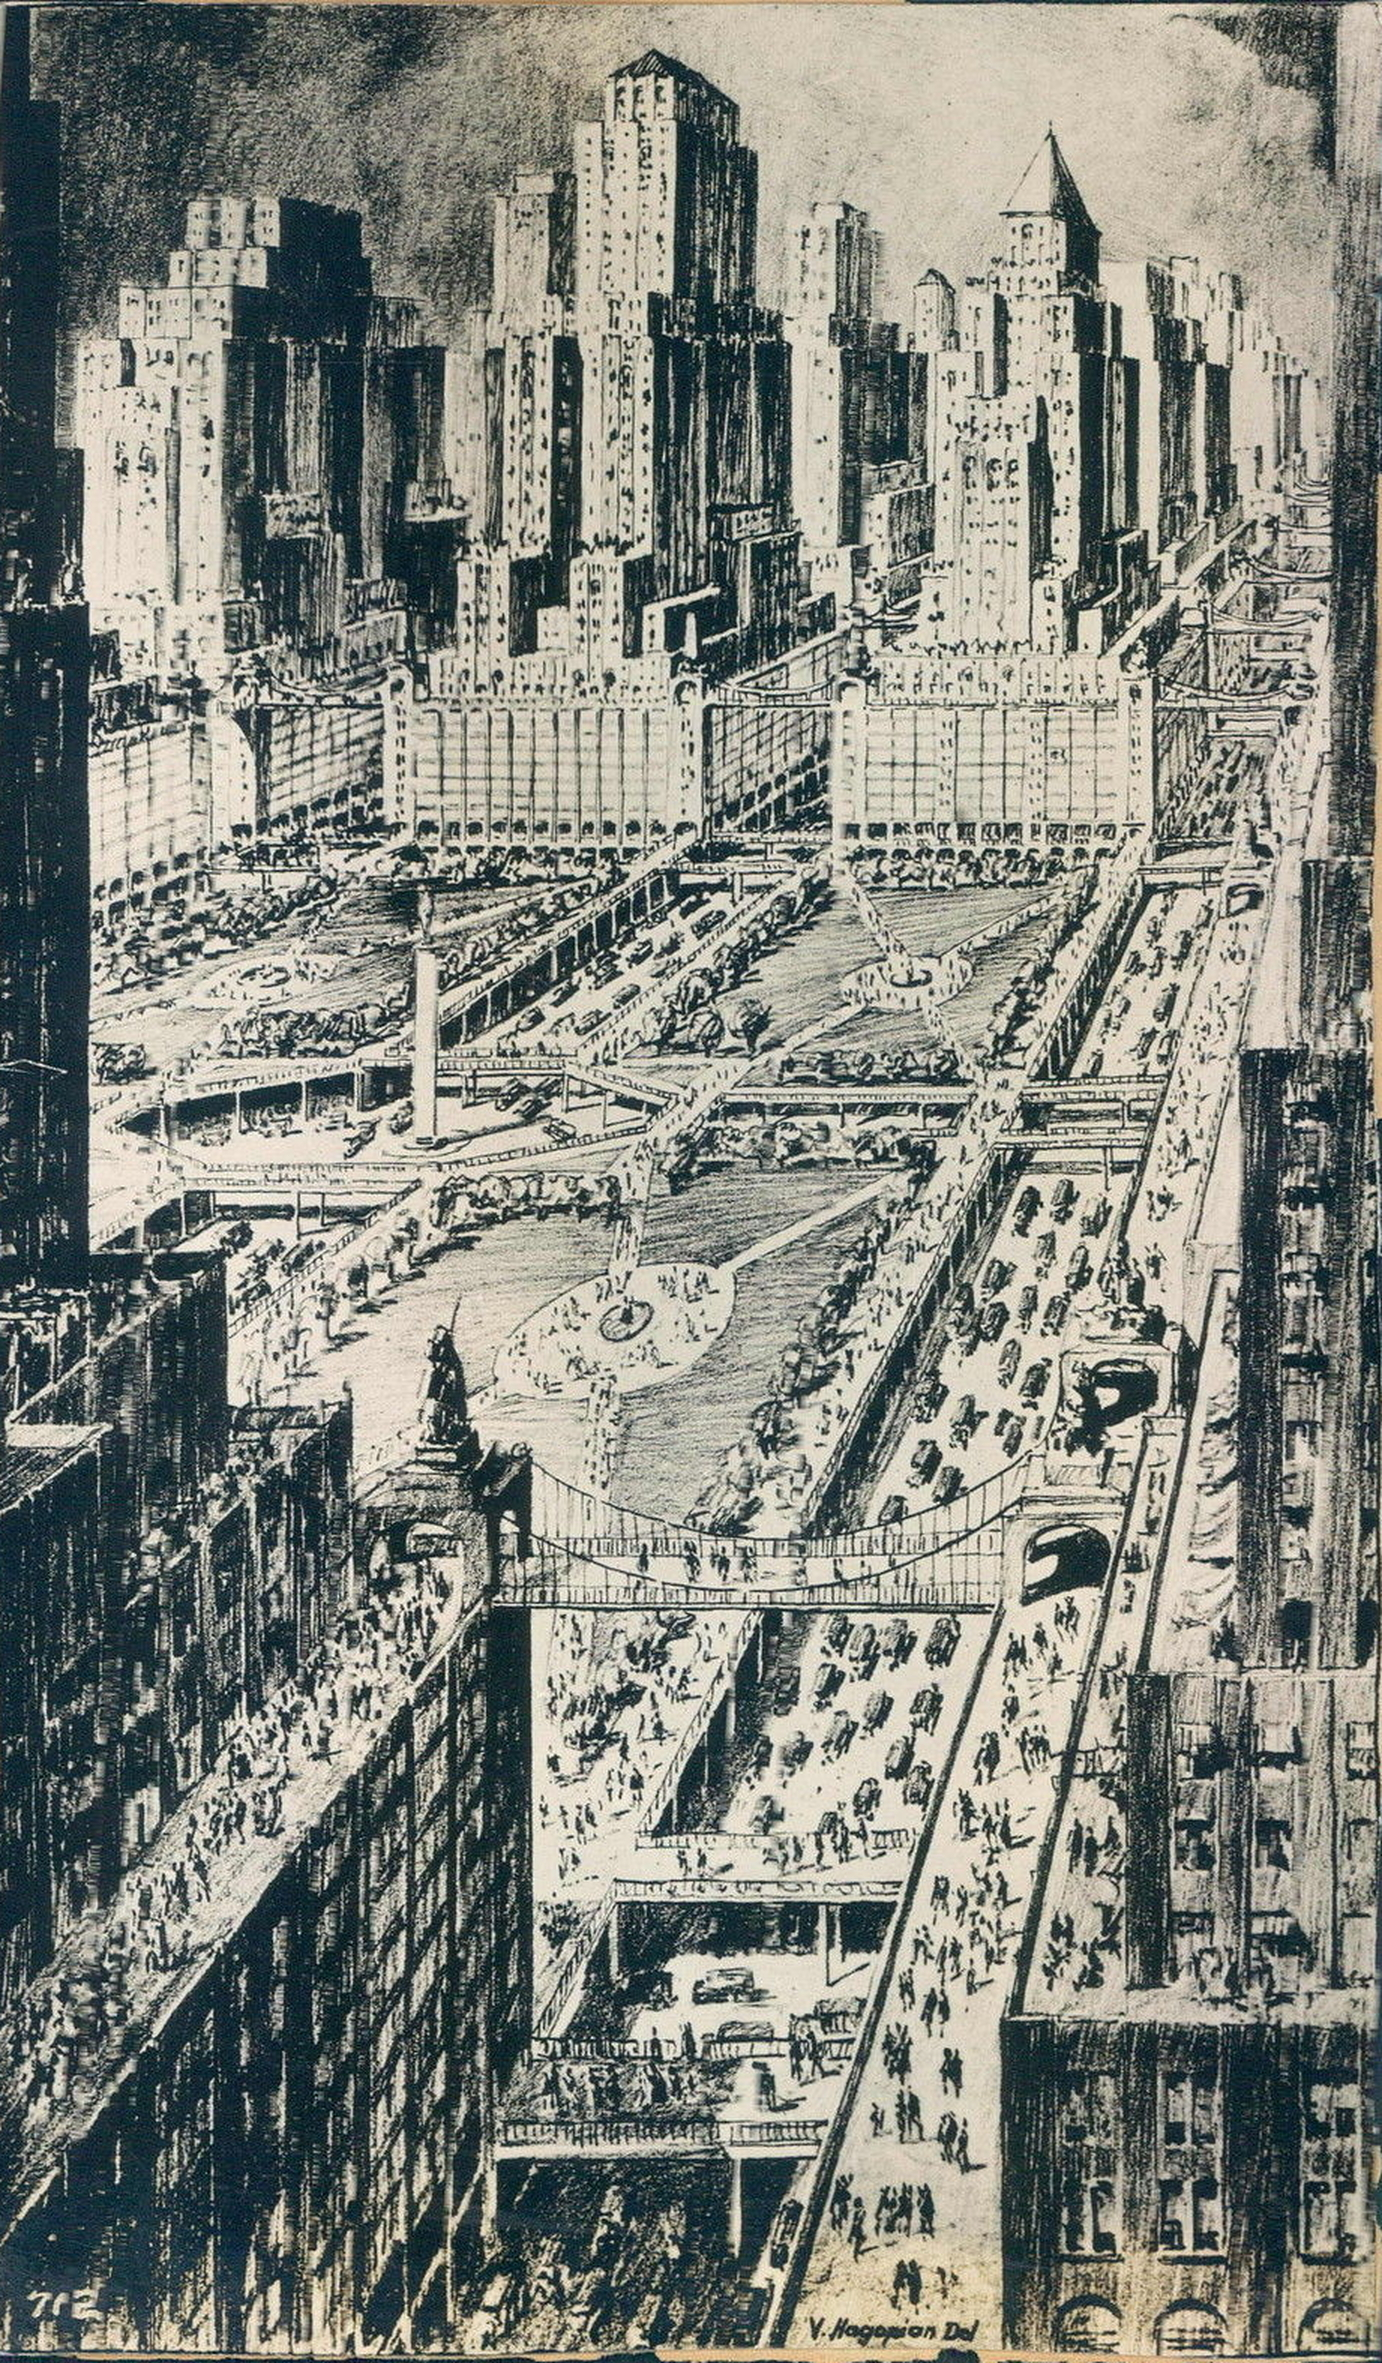 New York Of The Future As Imagined In 1939